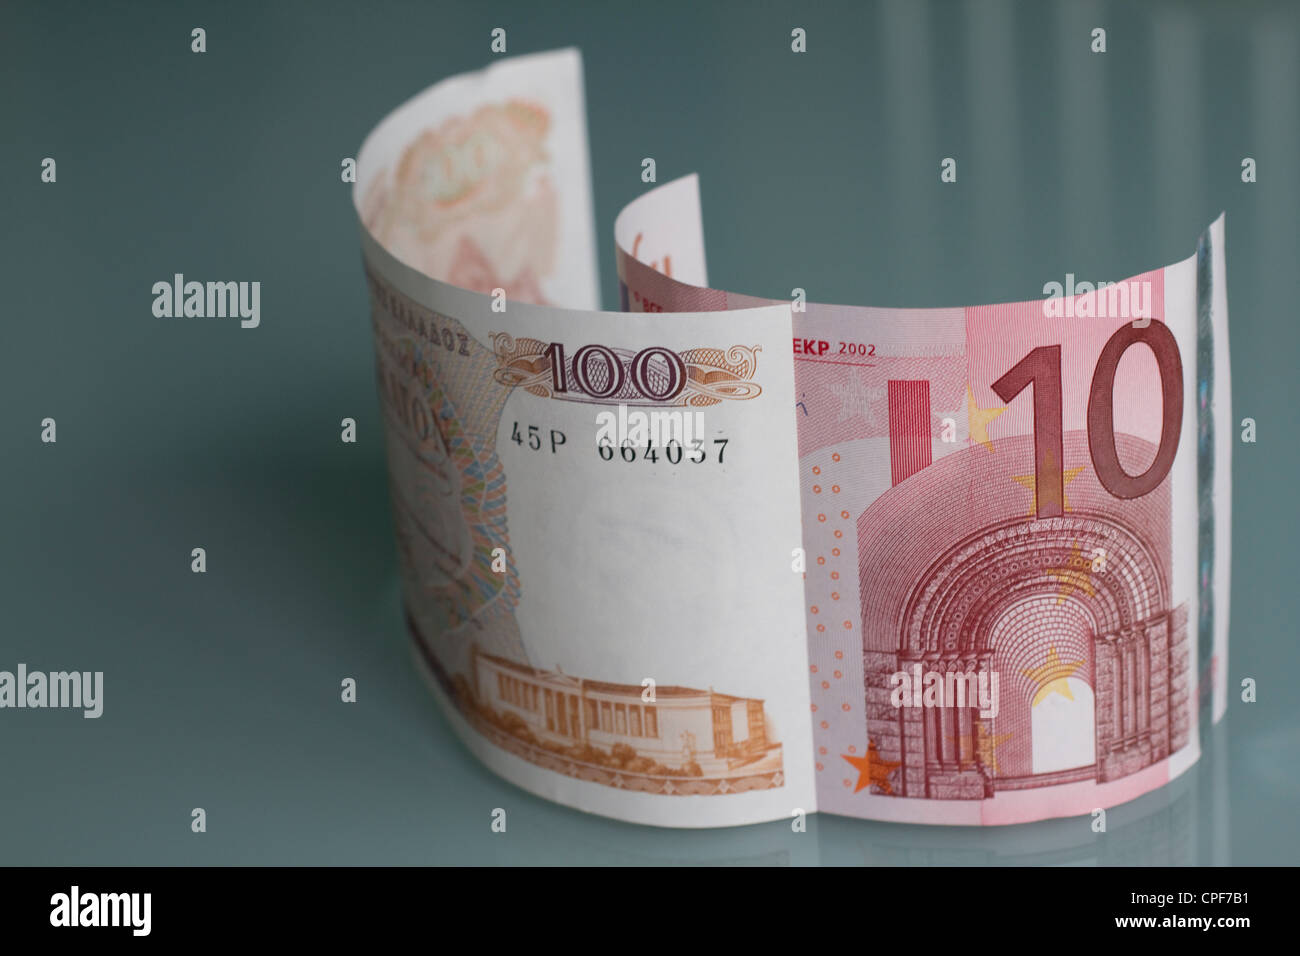 bank notes currency money cash drachma and euro, euros, drachmas are the previous currency of greece, euros - Stock Image